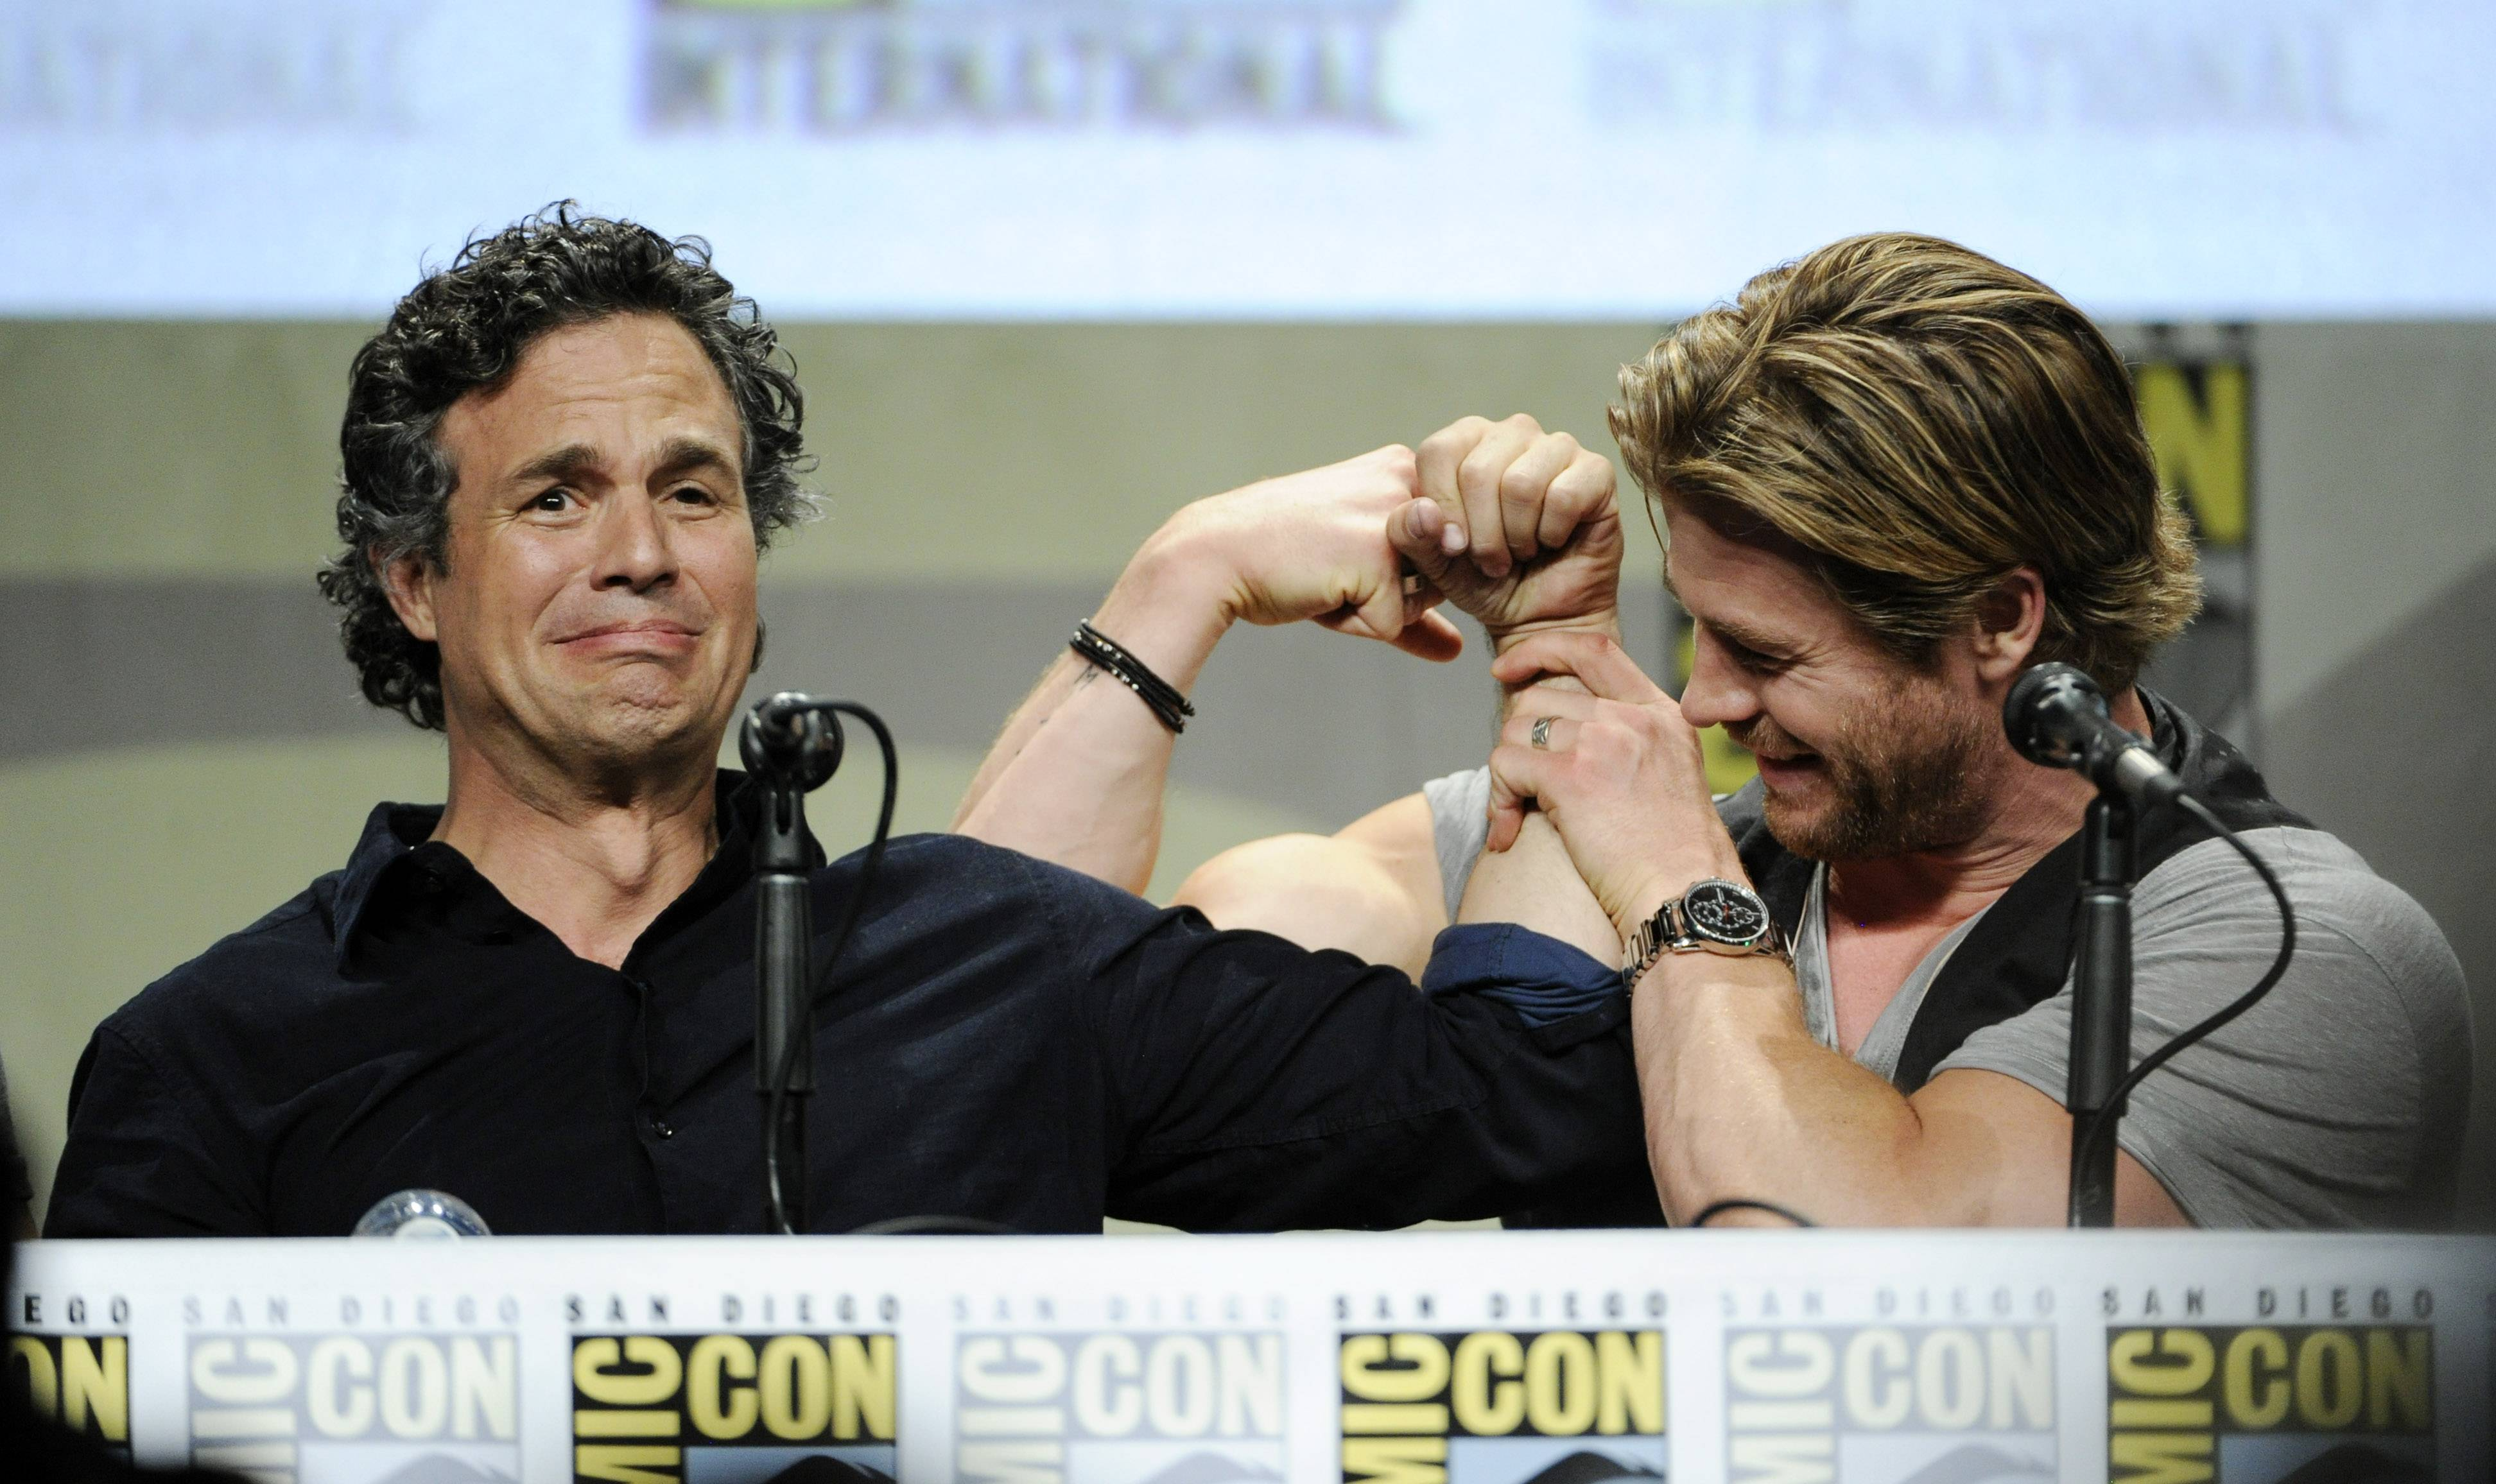 Actors Mark Ruffalo, left, and Chris Hemsworth compare biceps during the Marvel panel at Comic-Con International on Saturday in San Diego, Calif.